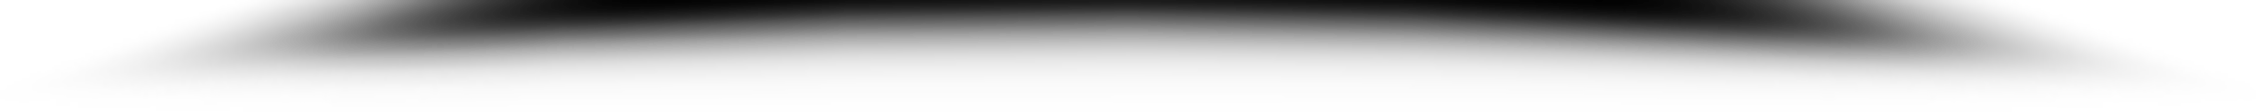 shadow (2).png